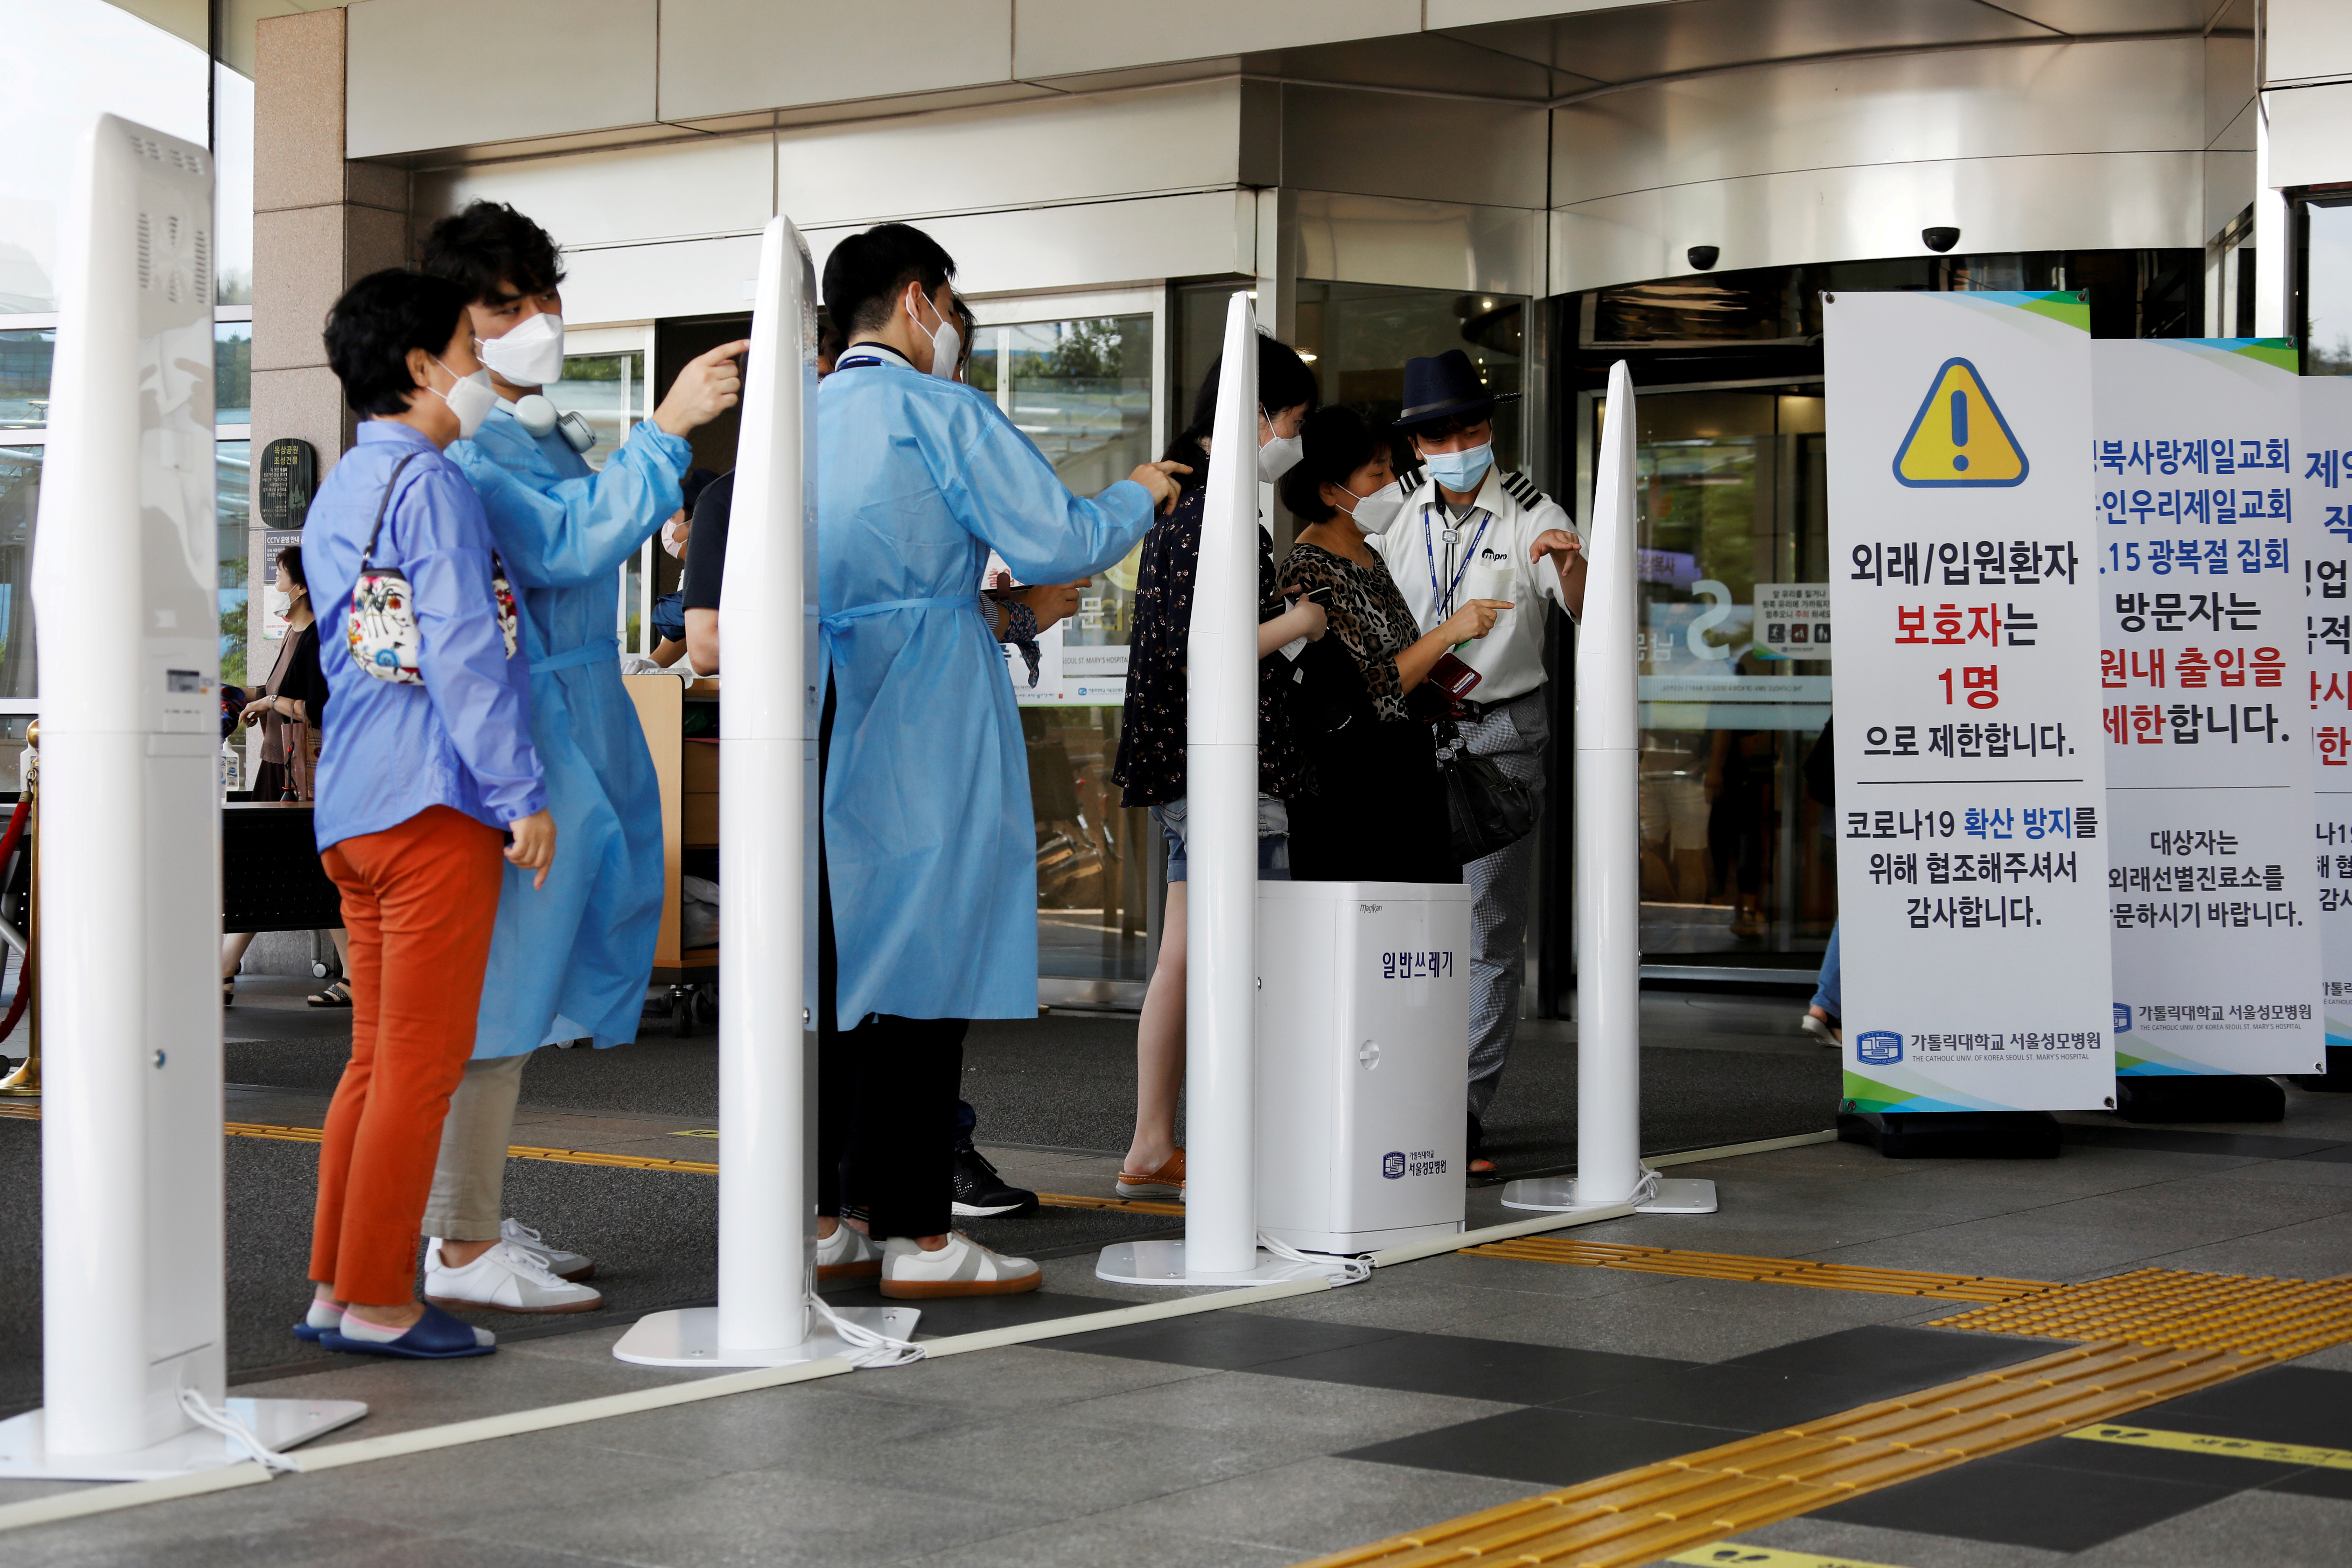 FILE PHOTO: FILE PHOTO: Visitors wearing masks to avoid the spread of COVID-19 fill out a form which is mandatory to get into a hospital in Seoul, South Korea, August 26, 2020.  REUTERS/Kim Hong-Ji